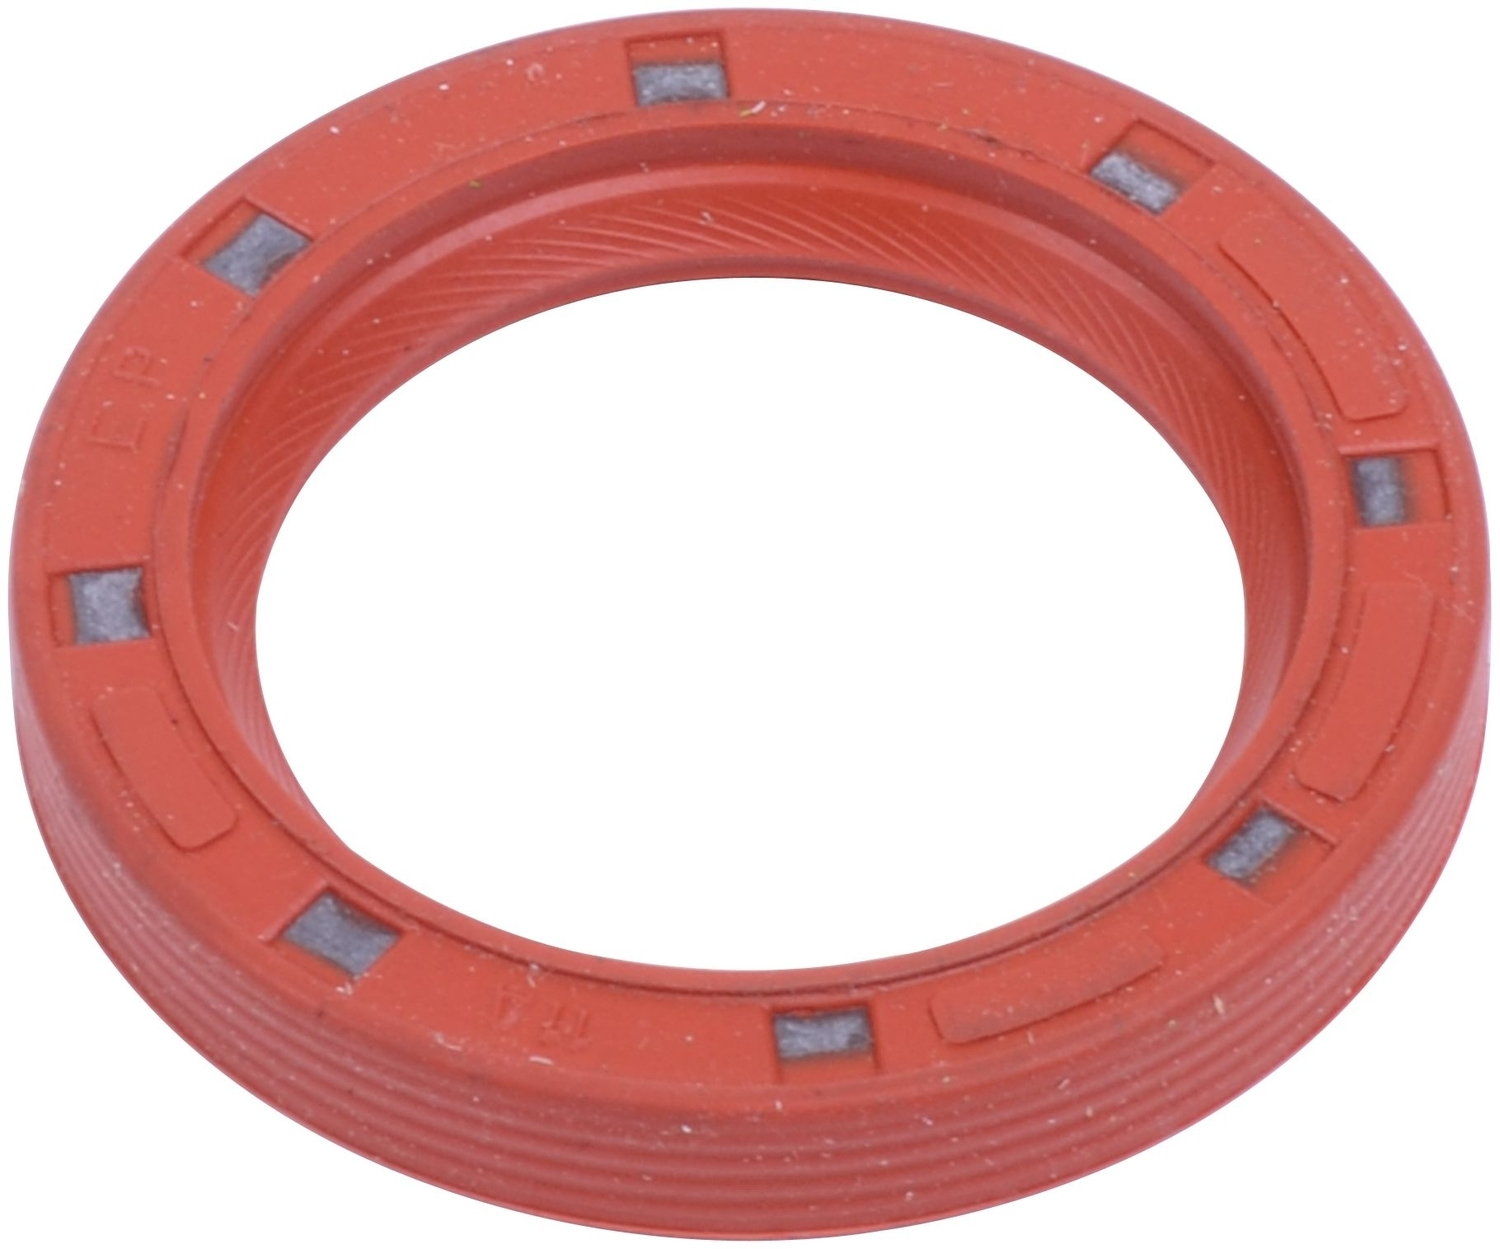 SKF (CHICAGO RAWHIDE) - Engine Camshaft Seal - SKF 13943